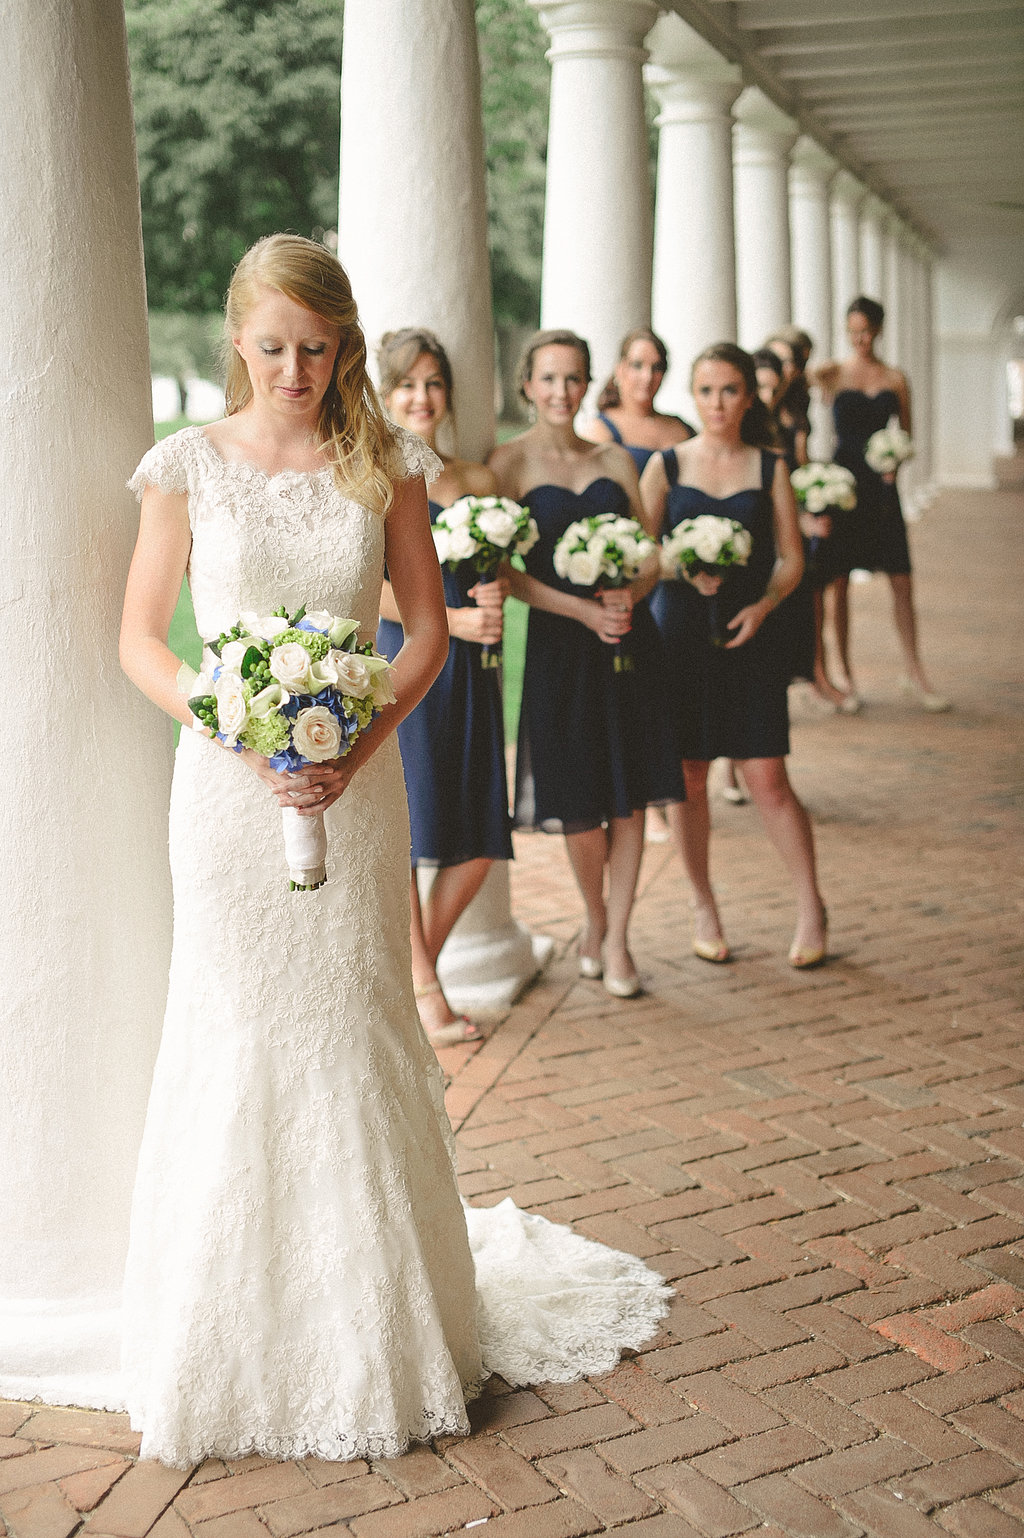 (bride and bridesmaids with bouquets)